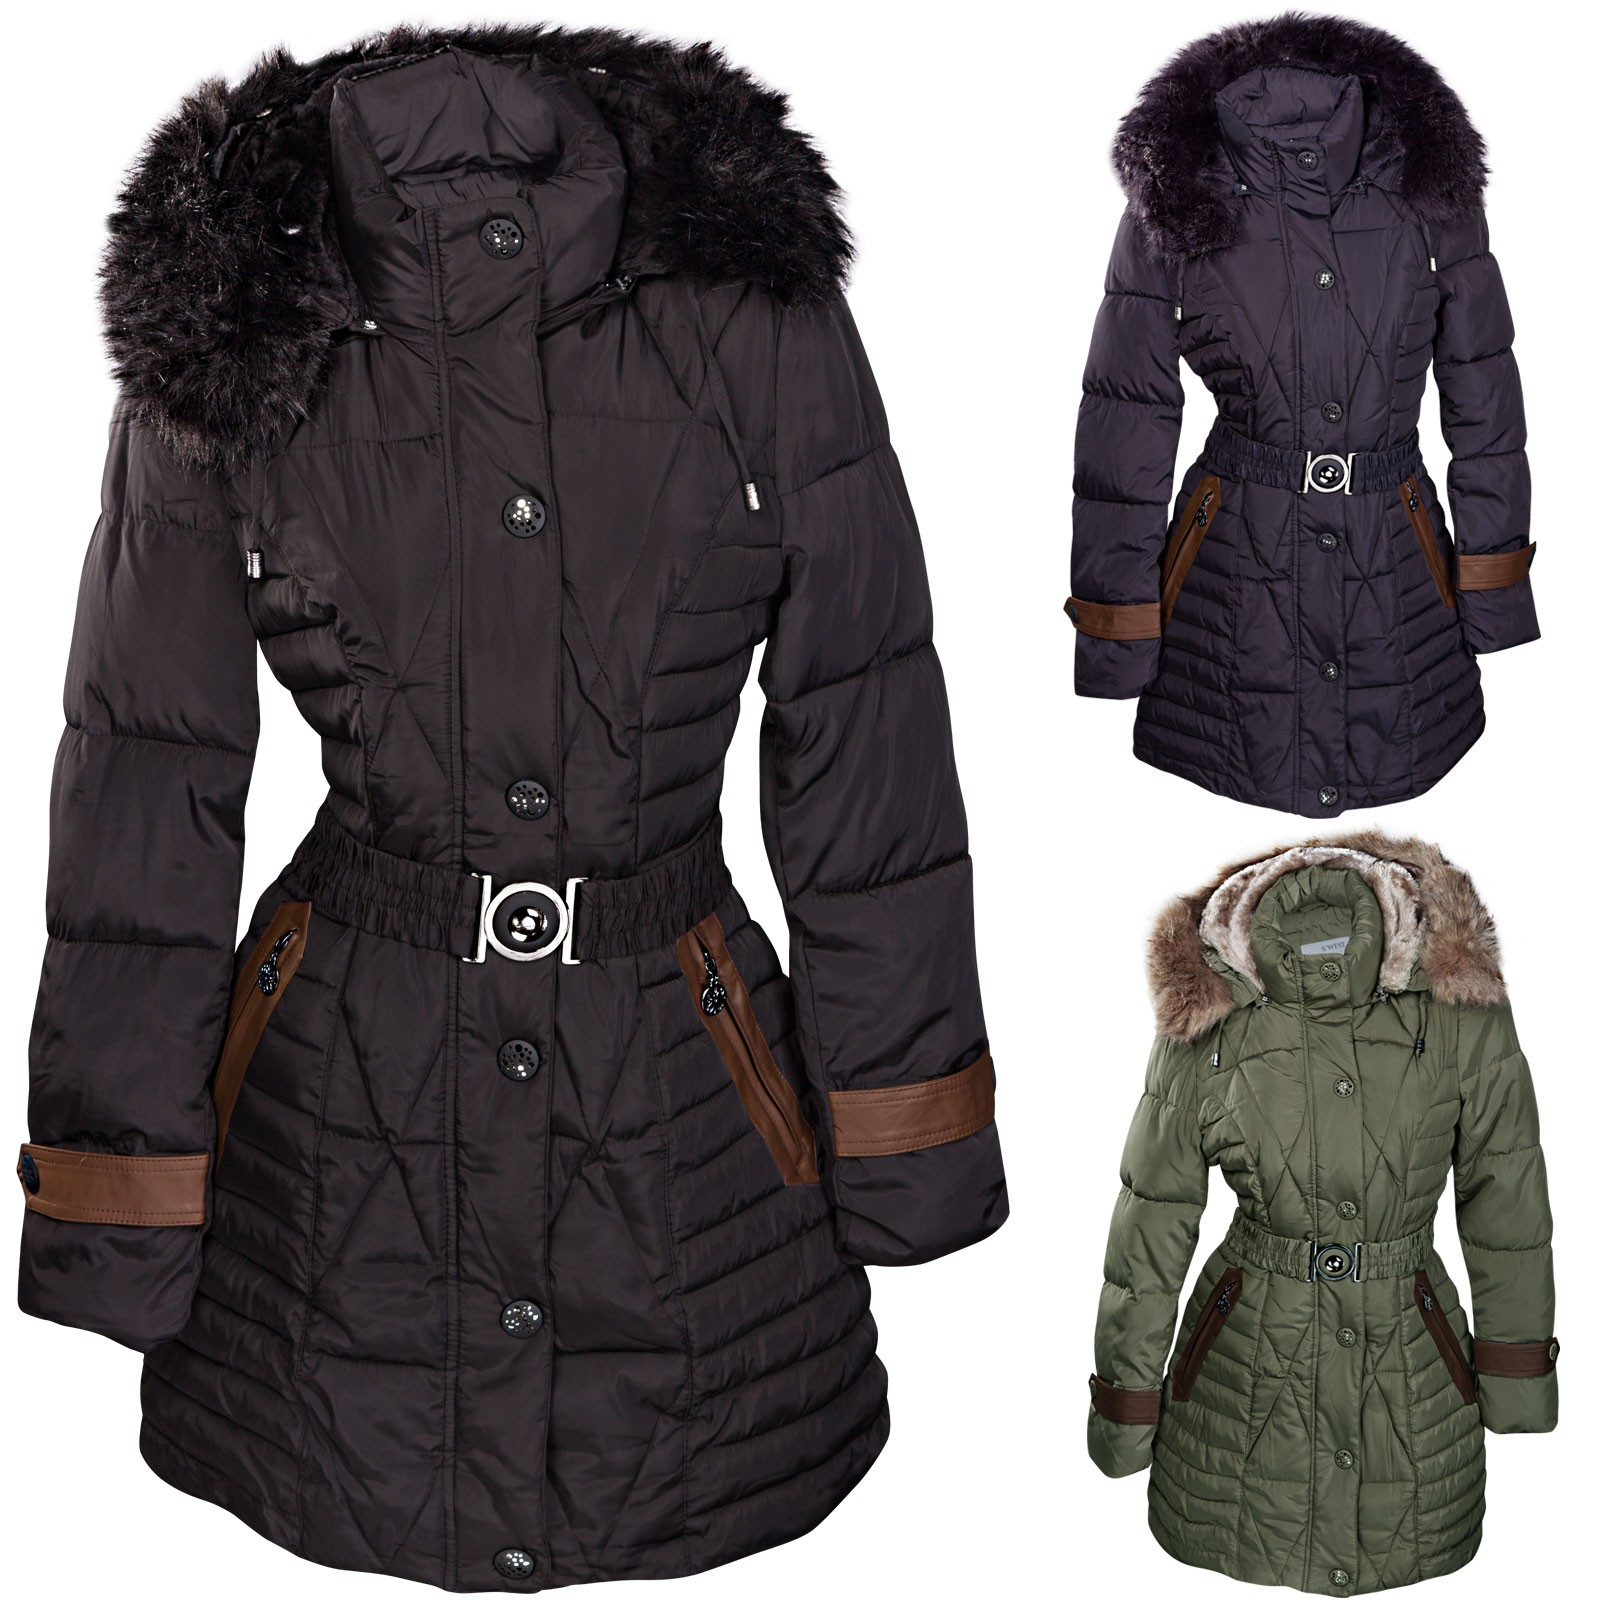 damen wintermantel fellkapuze daunen look parka. Black Bedroom Furniture Sets. Home Design Ideas